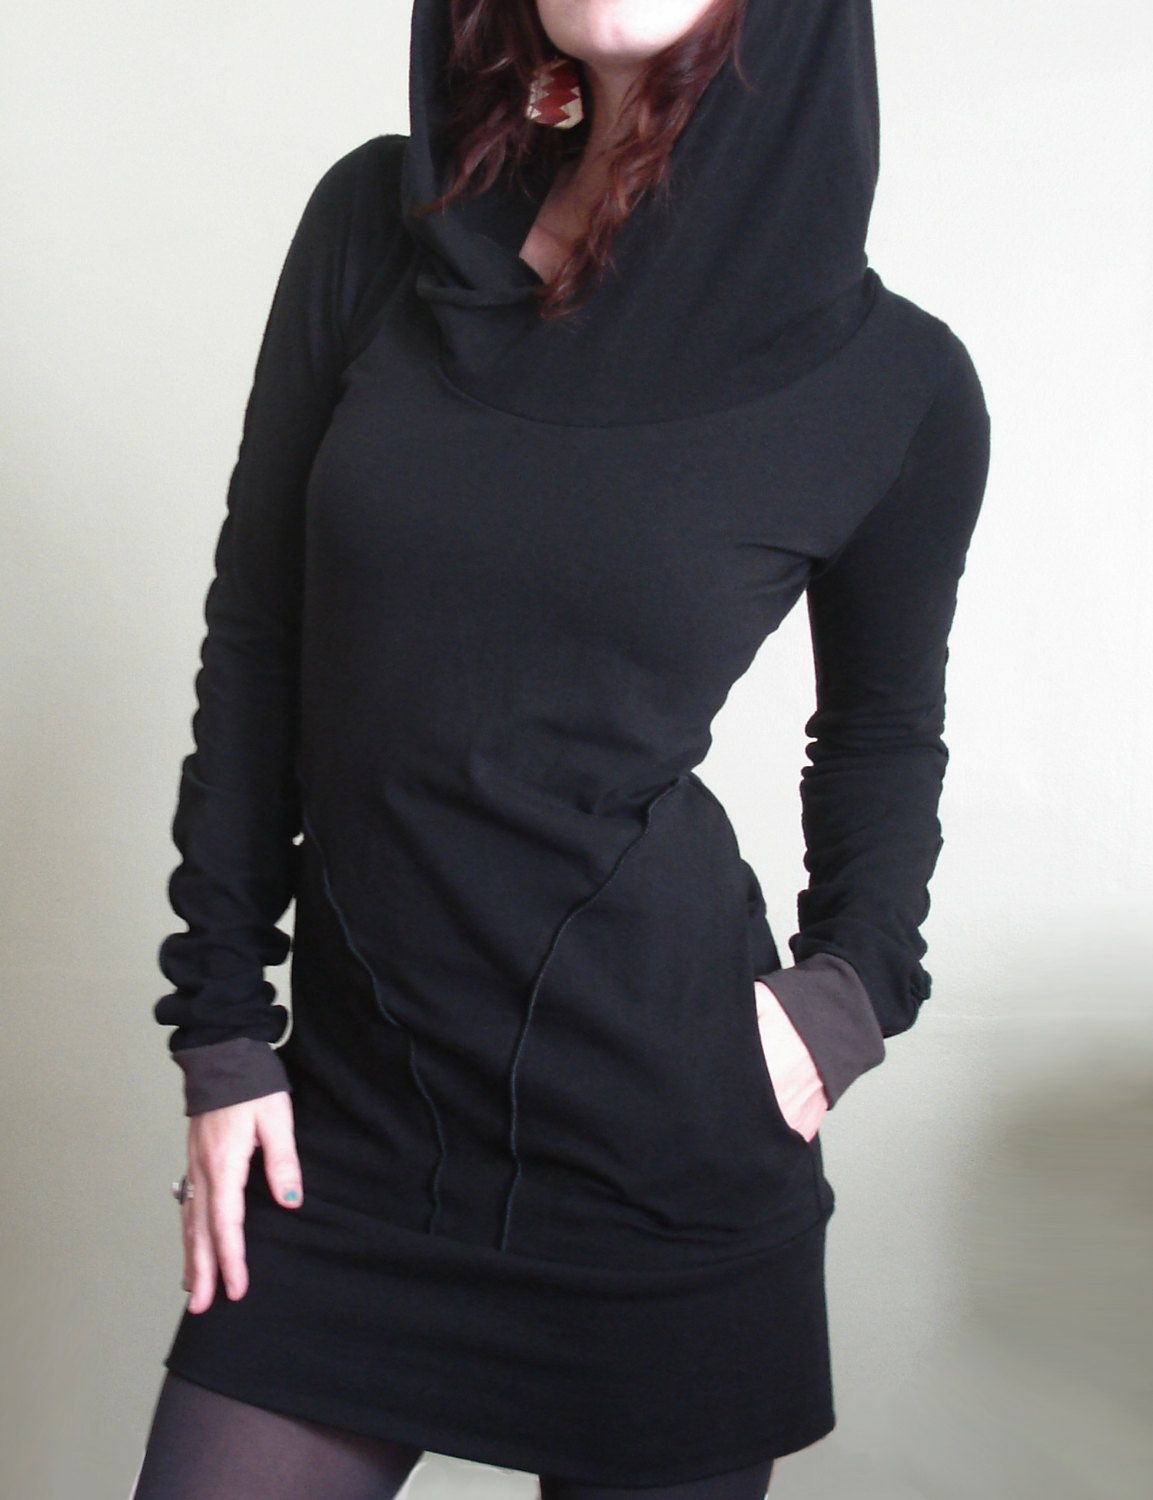 36+ Black tunic dress with pockets ideas in 2021